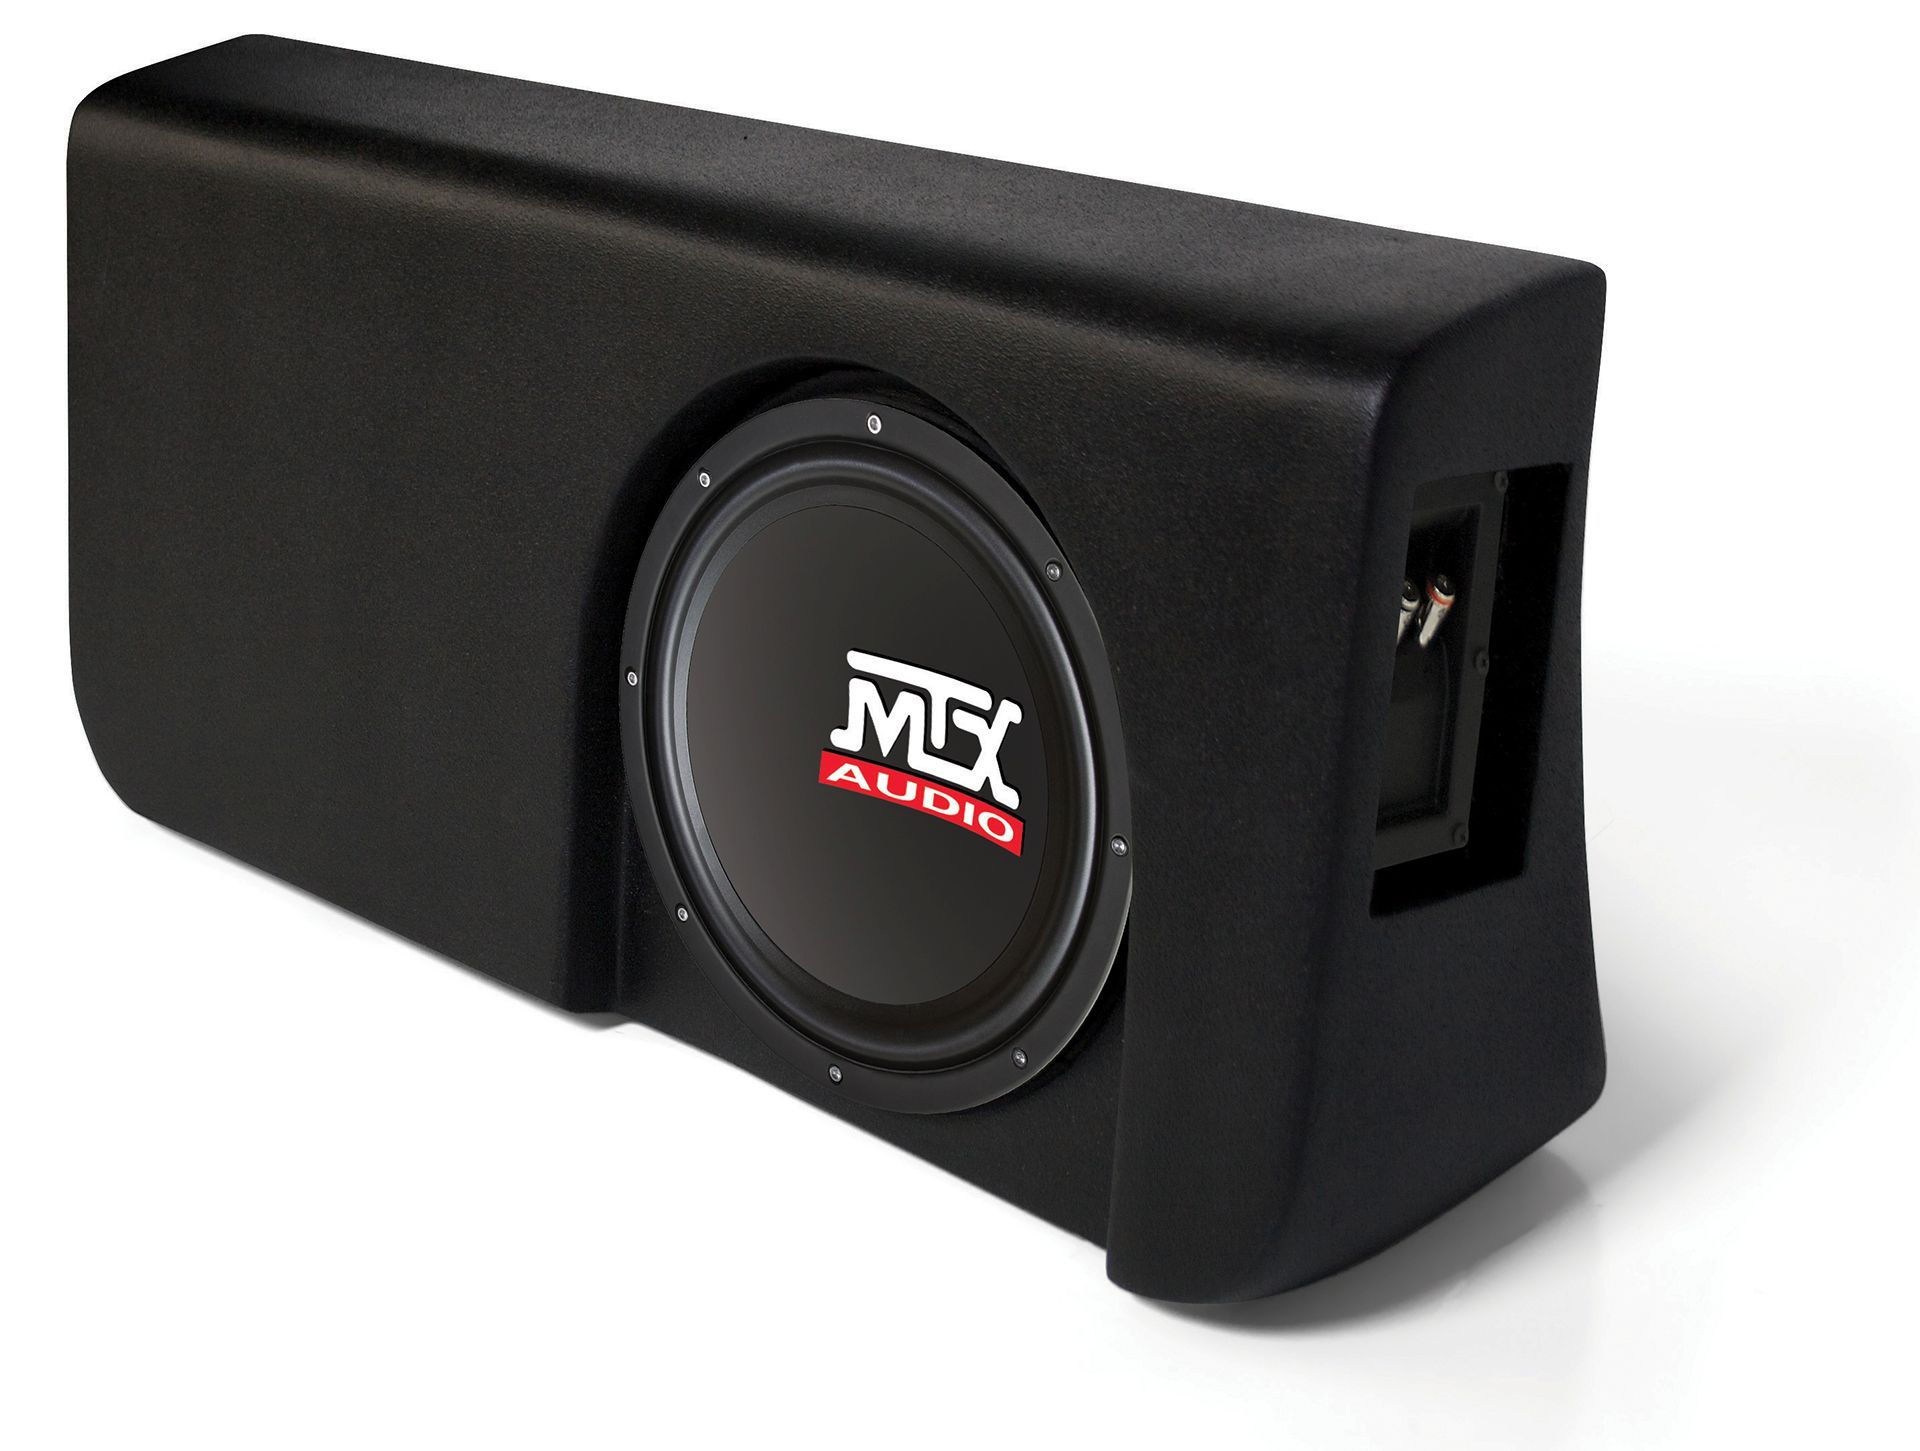 Ford F-150 SuperCrew Cab 2009-2015 ThunderForm Custom Subwoofer Enclosure |  MTX Audio - Serious About Sound®